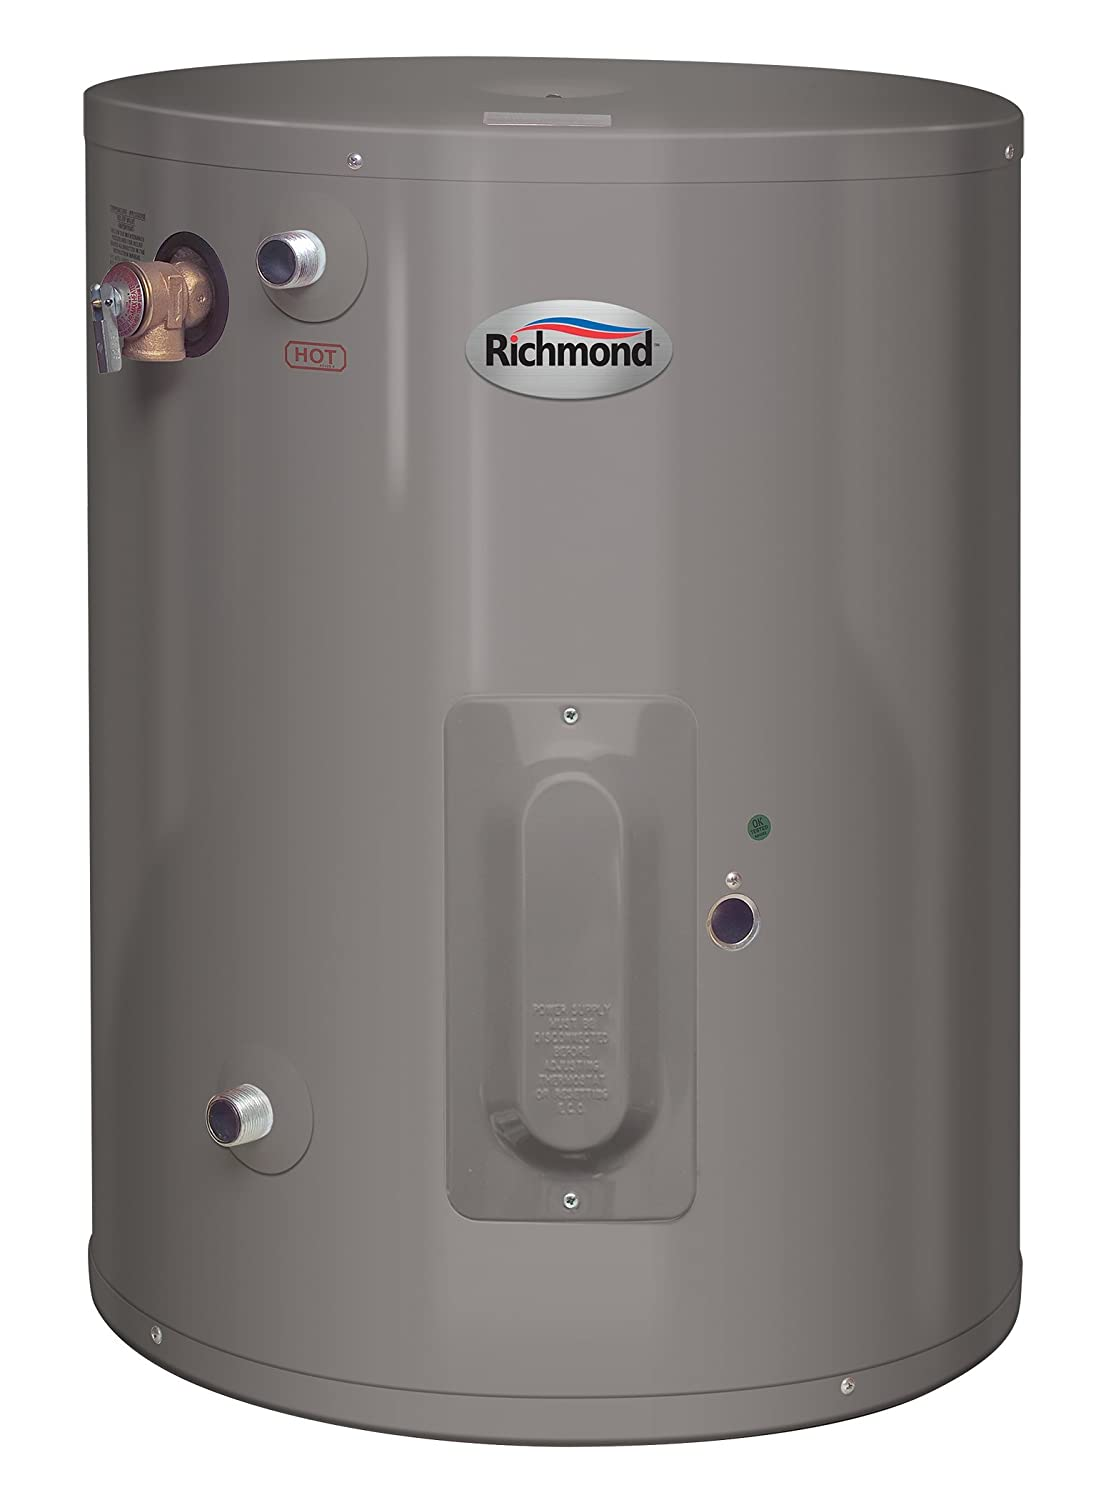 RHEEM/RICHMOND 6EP15-1 Richmond Electric Water Heater, 15 Gal, 15 gallon